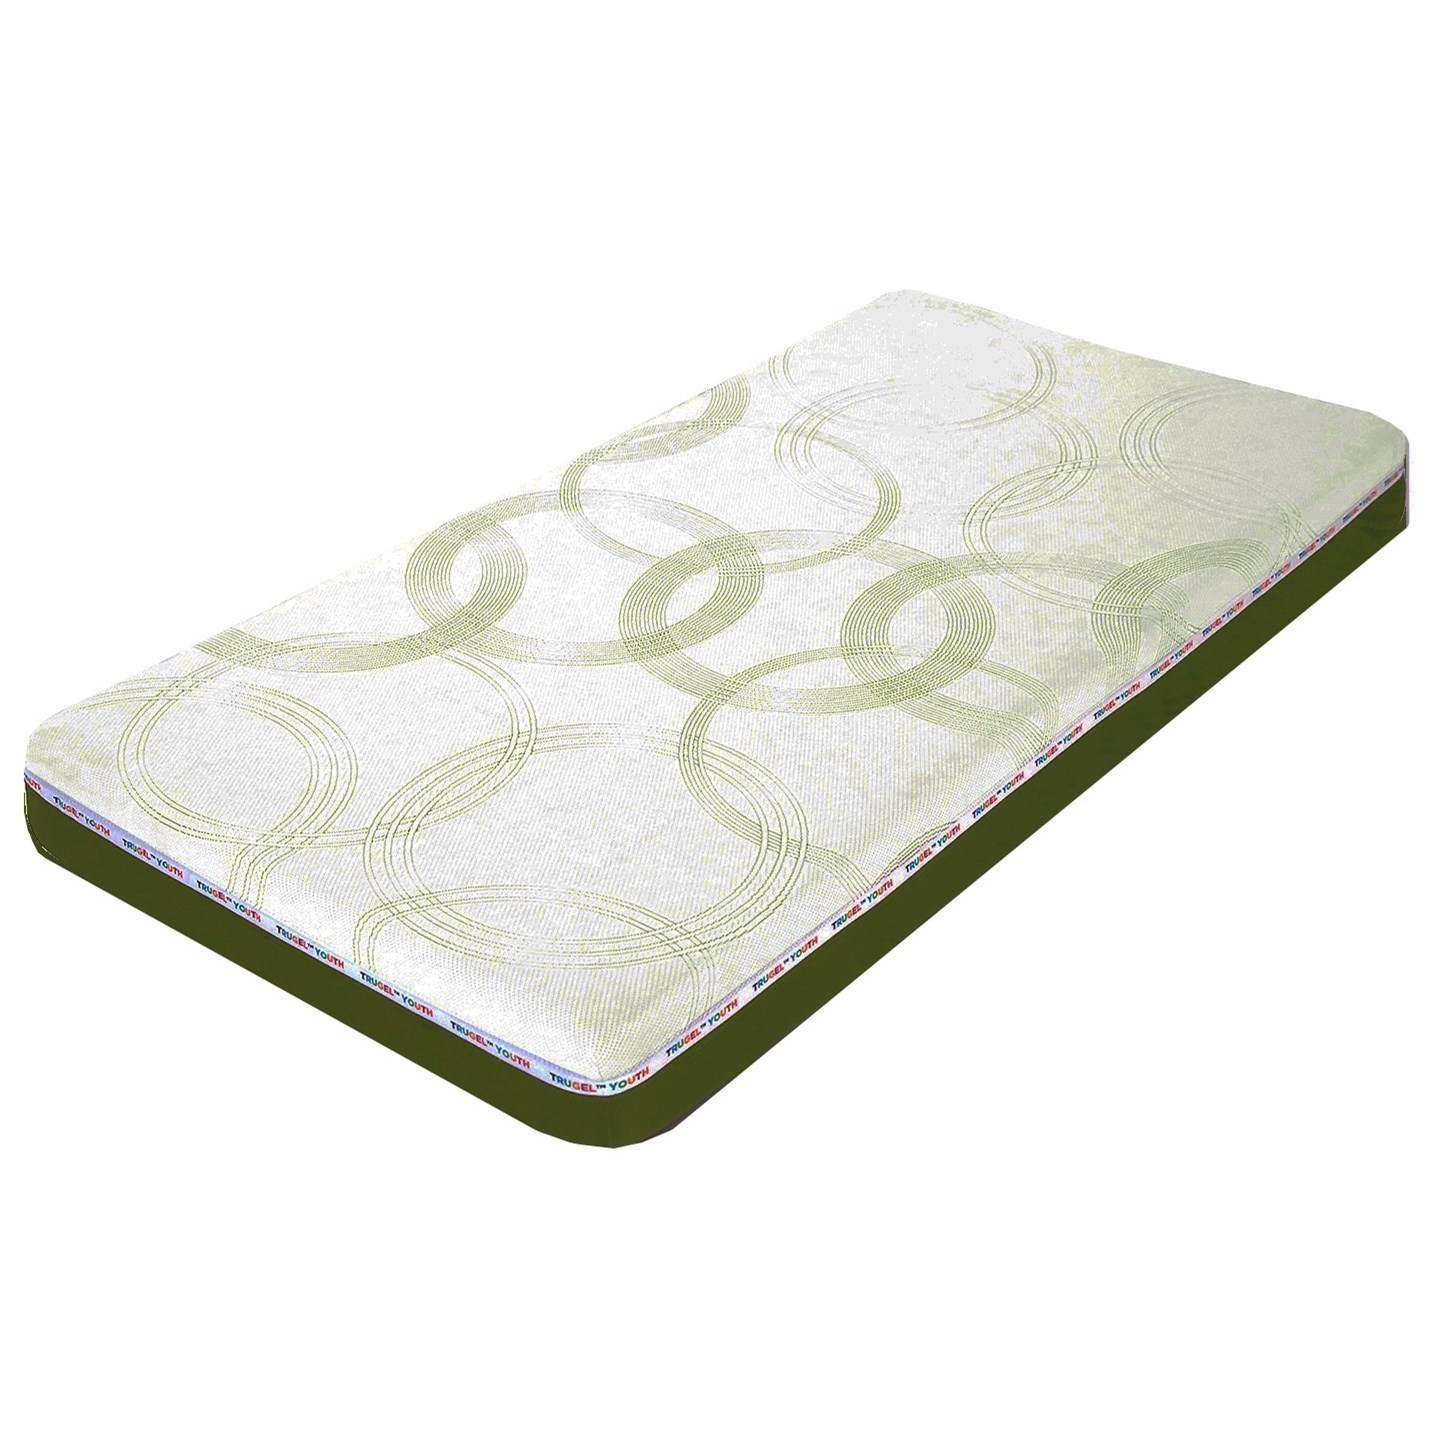 Memory Foam Mattress Guide Glideaway Youth Foam Mattresses Mat Yg18gr F Full Green 7